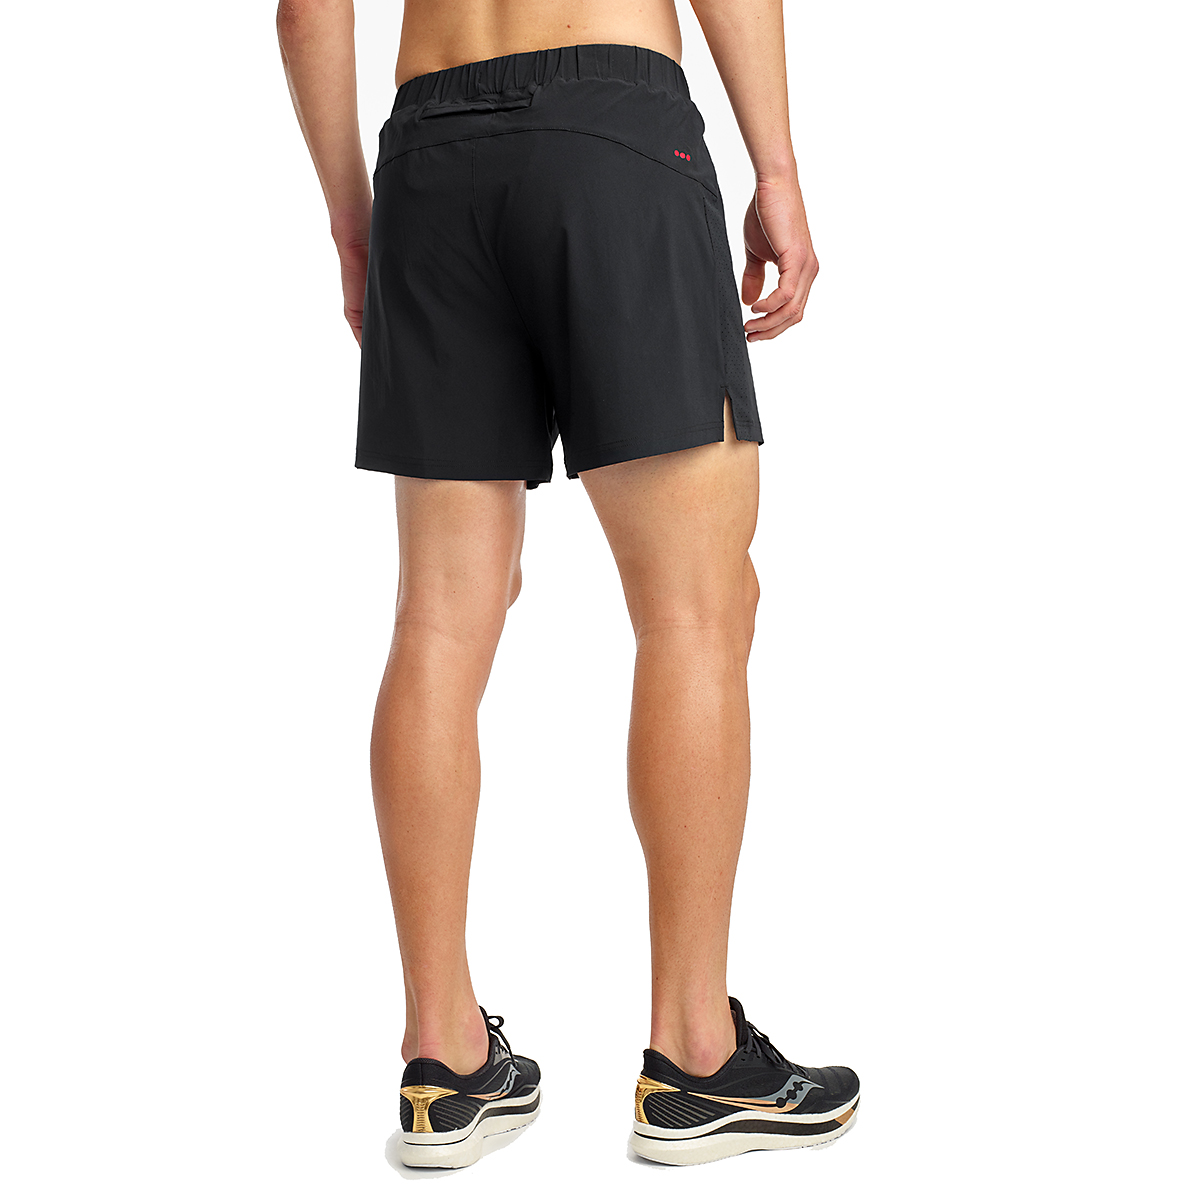 "Men's Saucony Outpace 5"" Short - Color: Black - Size: S, Black, large, image 2"